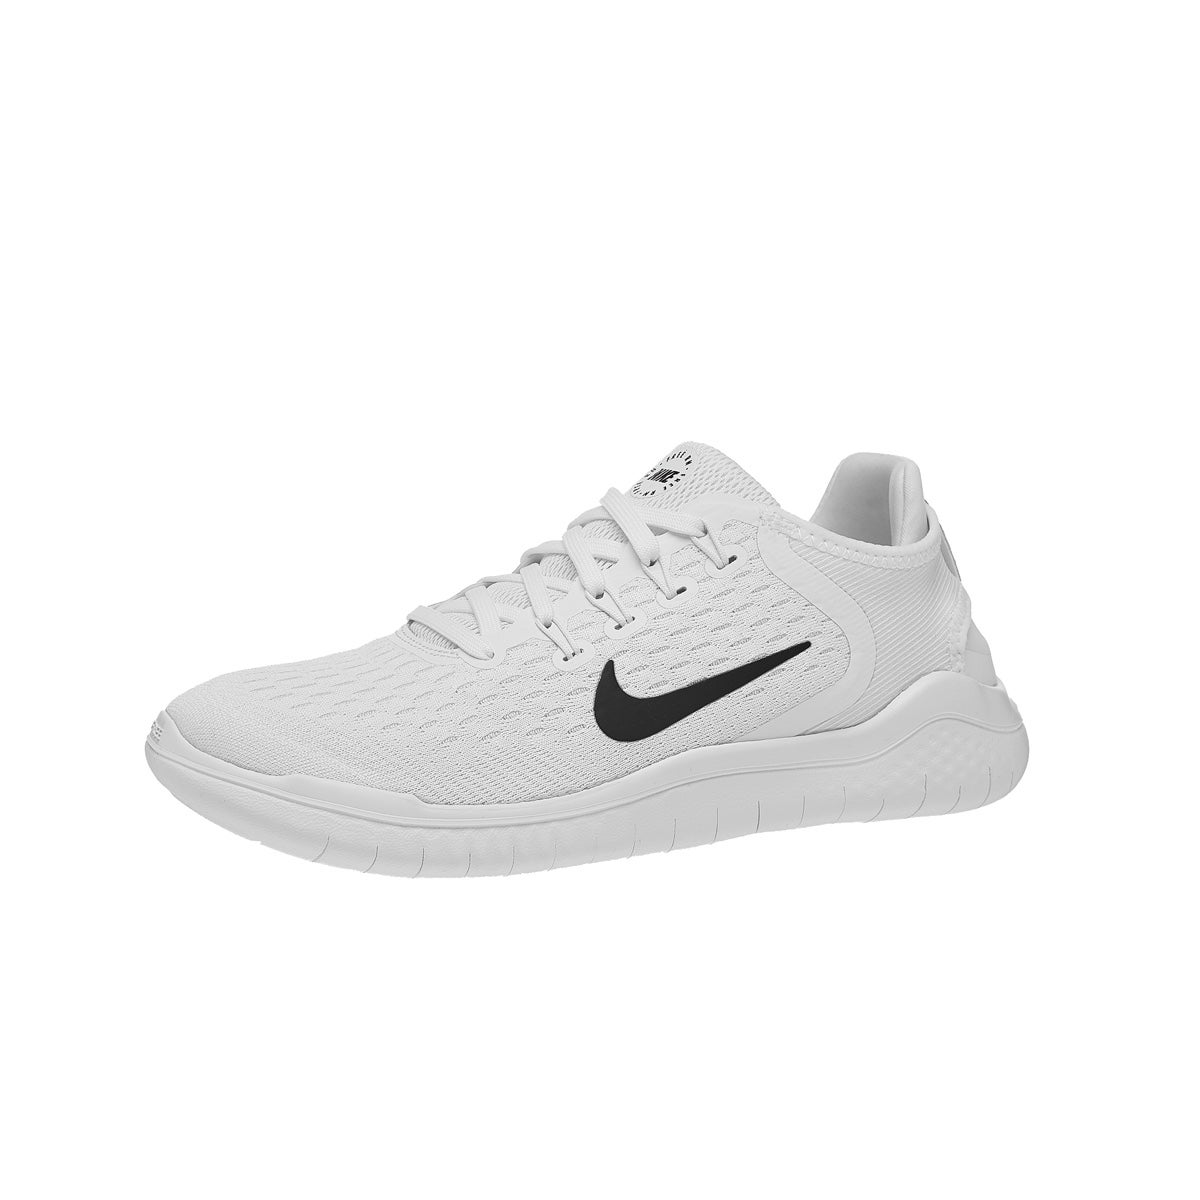 best sneakers de290 53e2b 65302 c0fec  norway nike free rn 2018 womens shoes white black 360 view running  warehouse europe. 61fc0